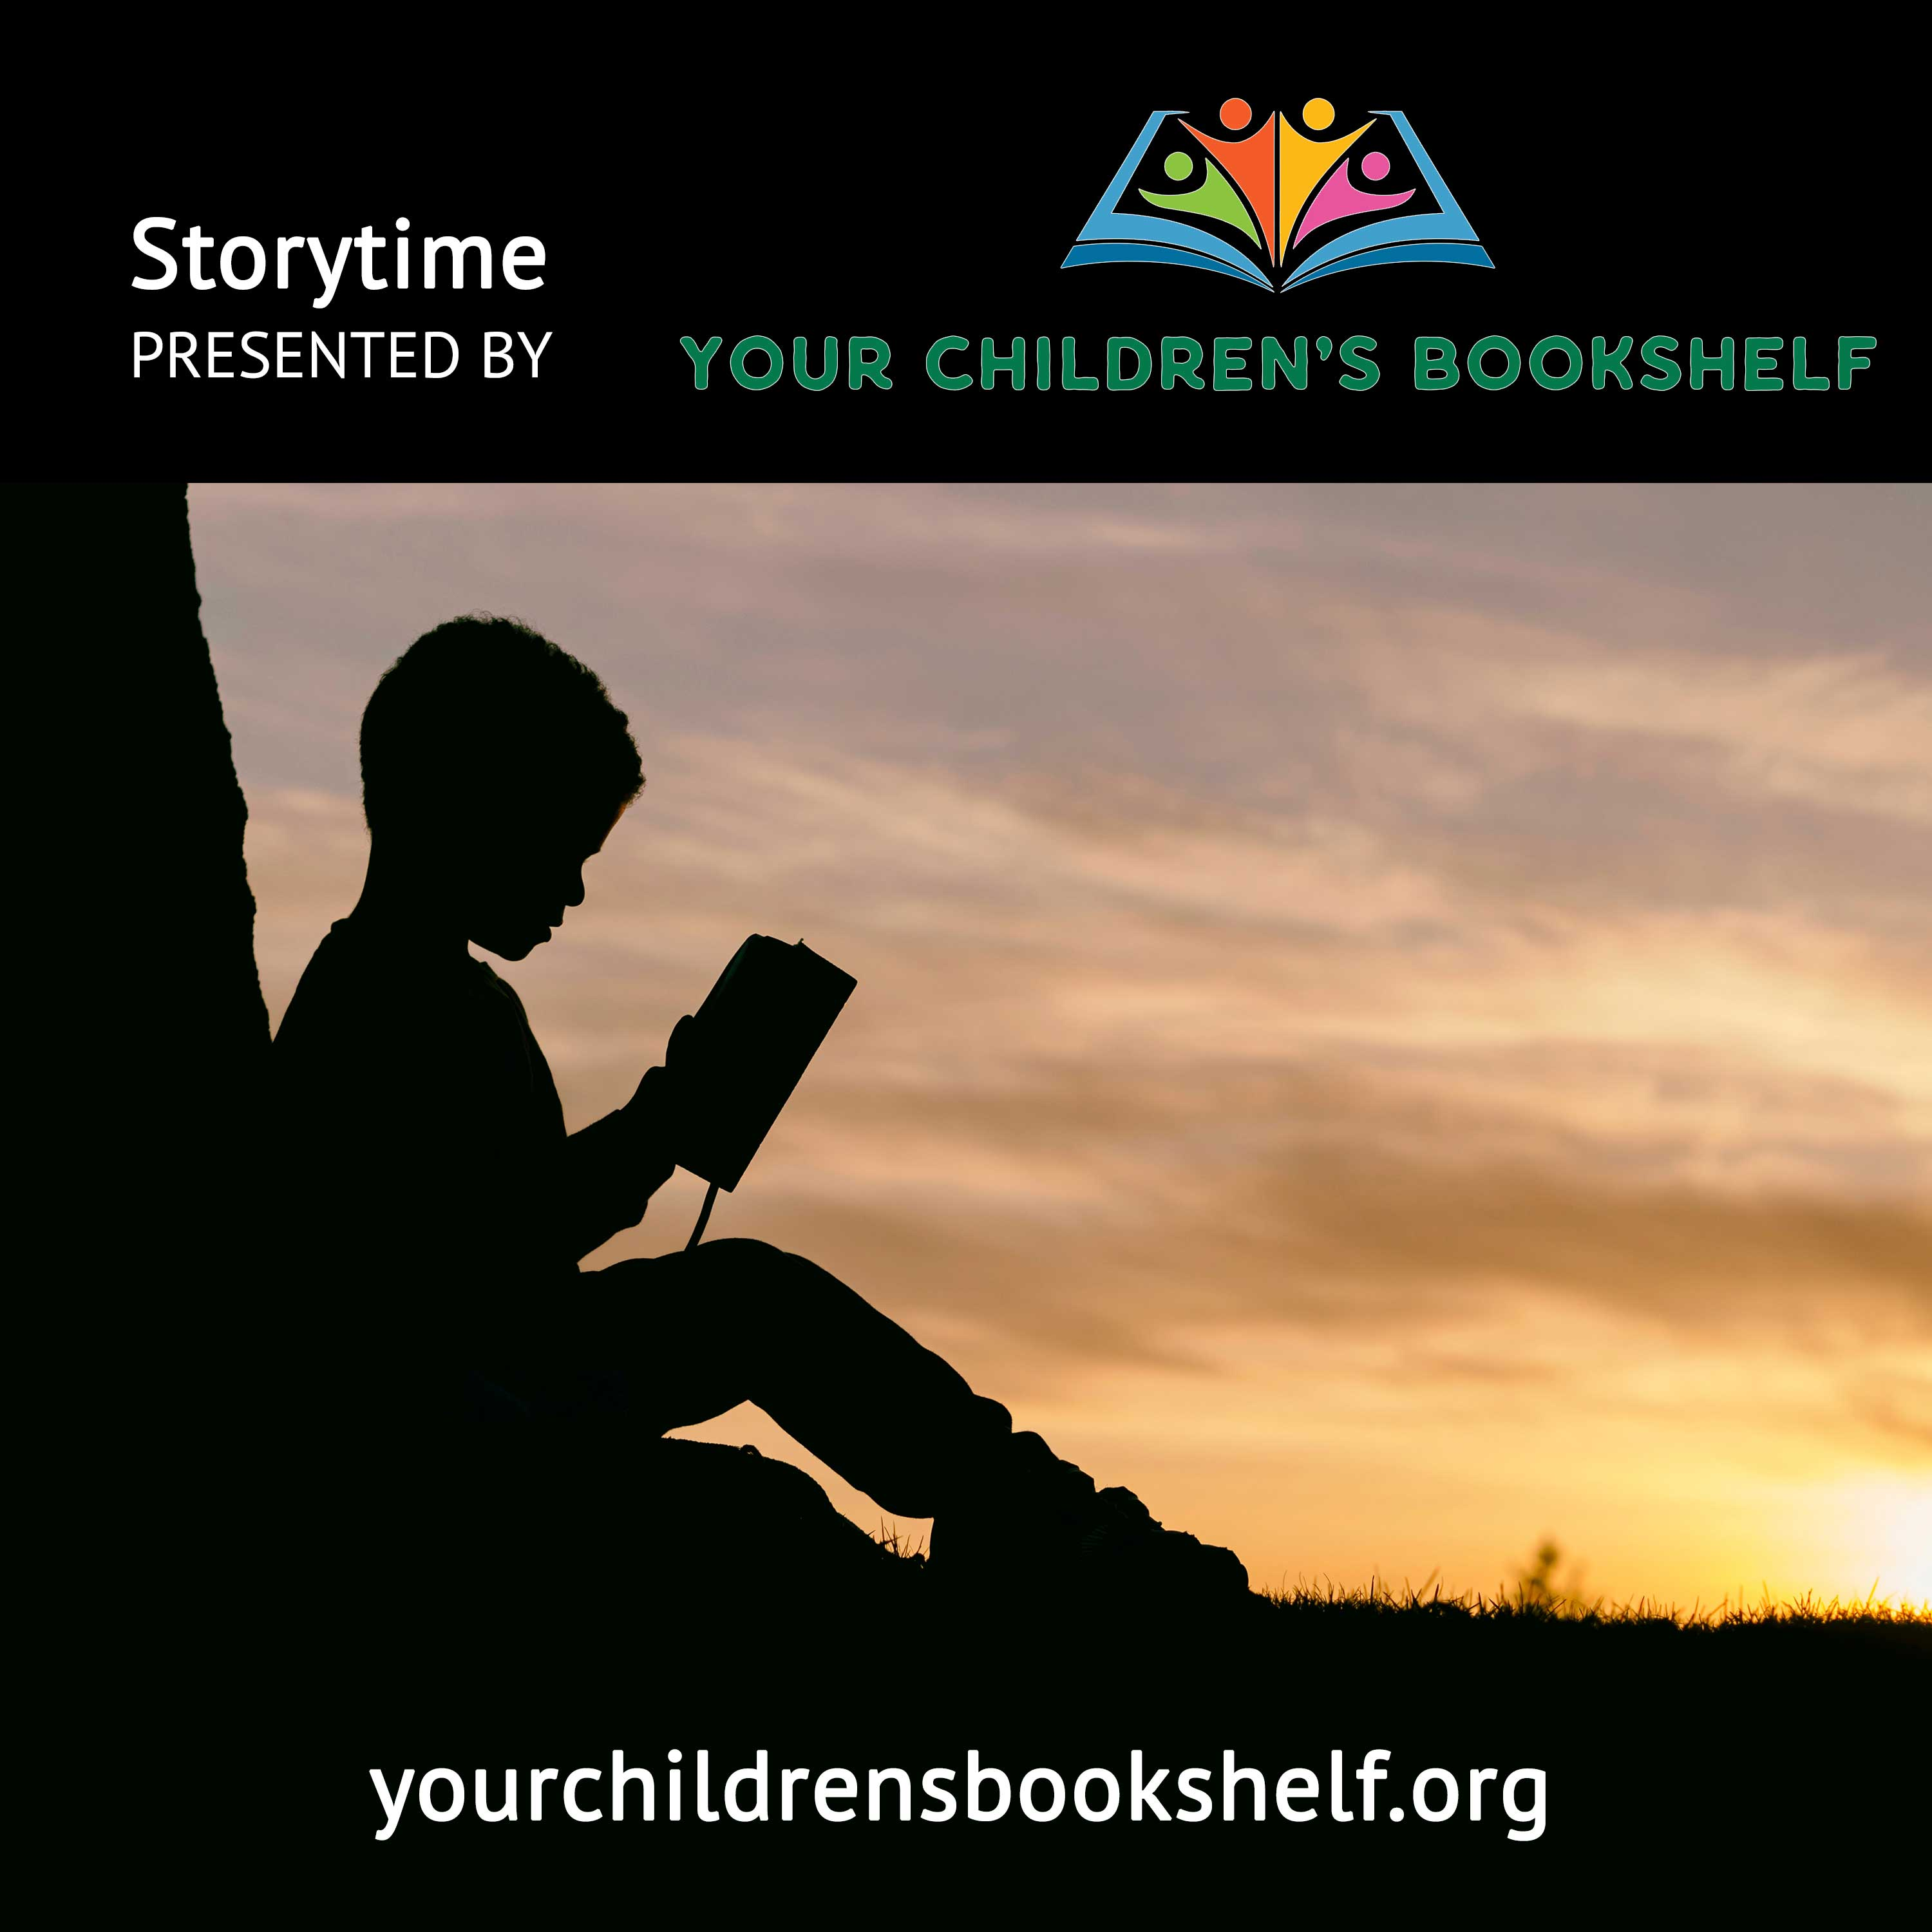 Show artwork for Storytime Presented by Your Children's Bookshelf